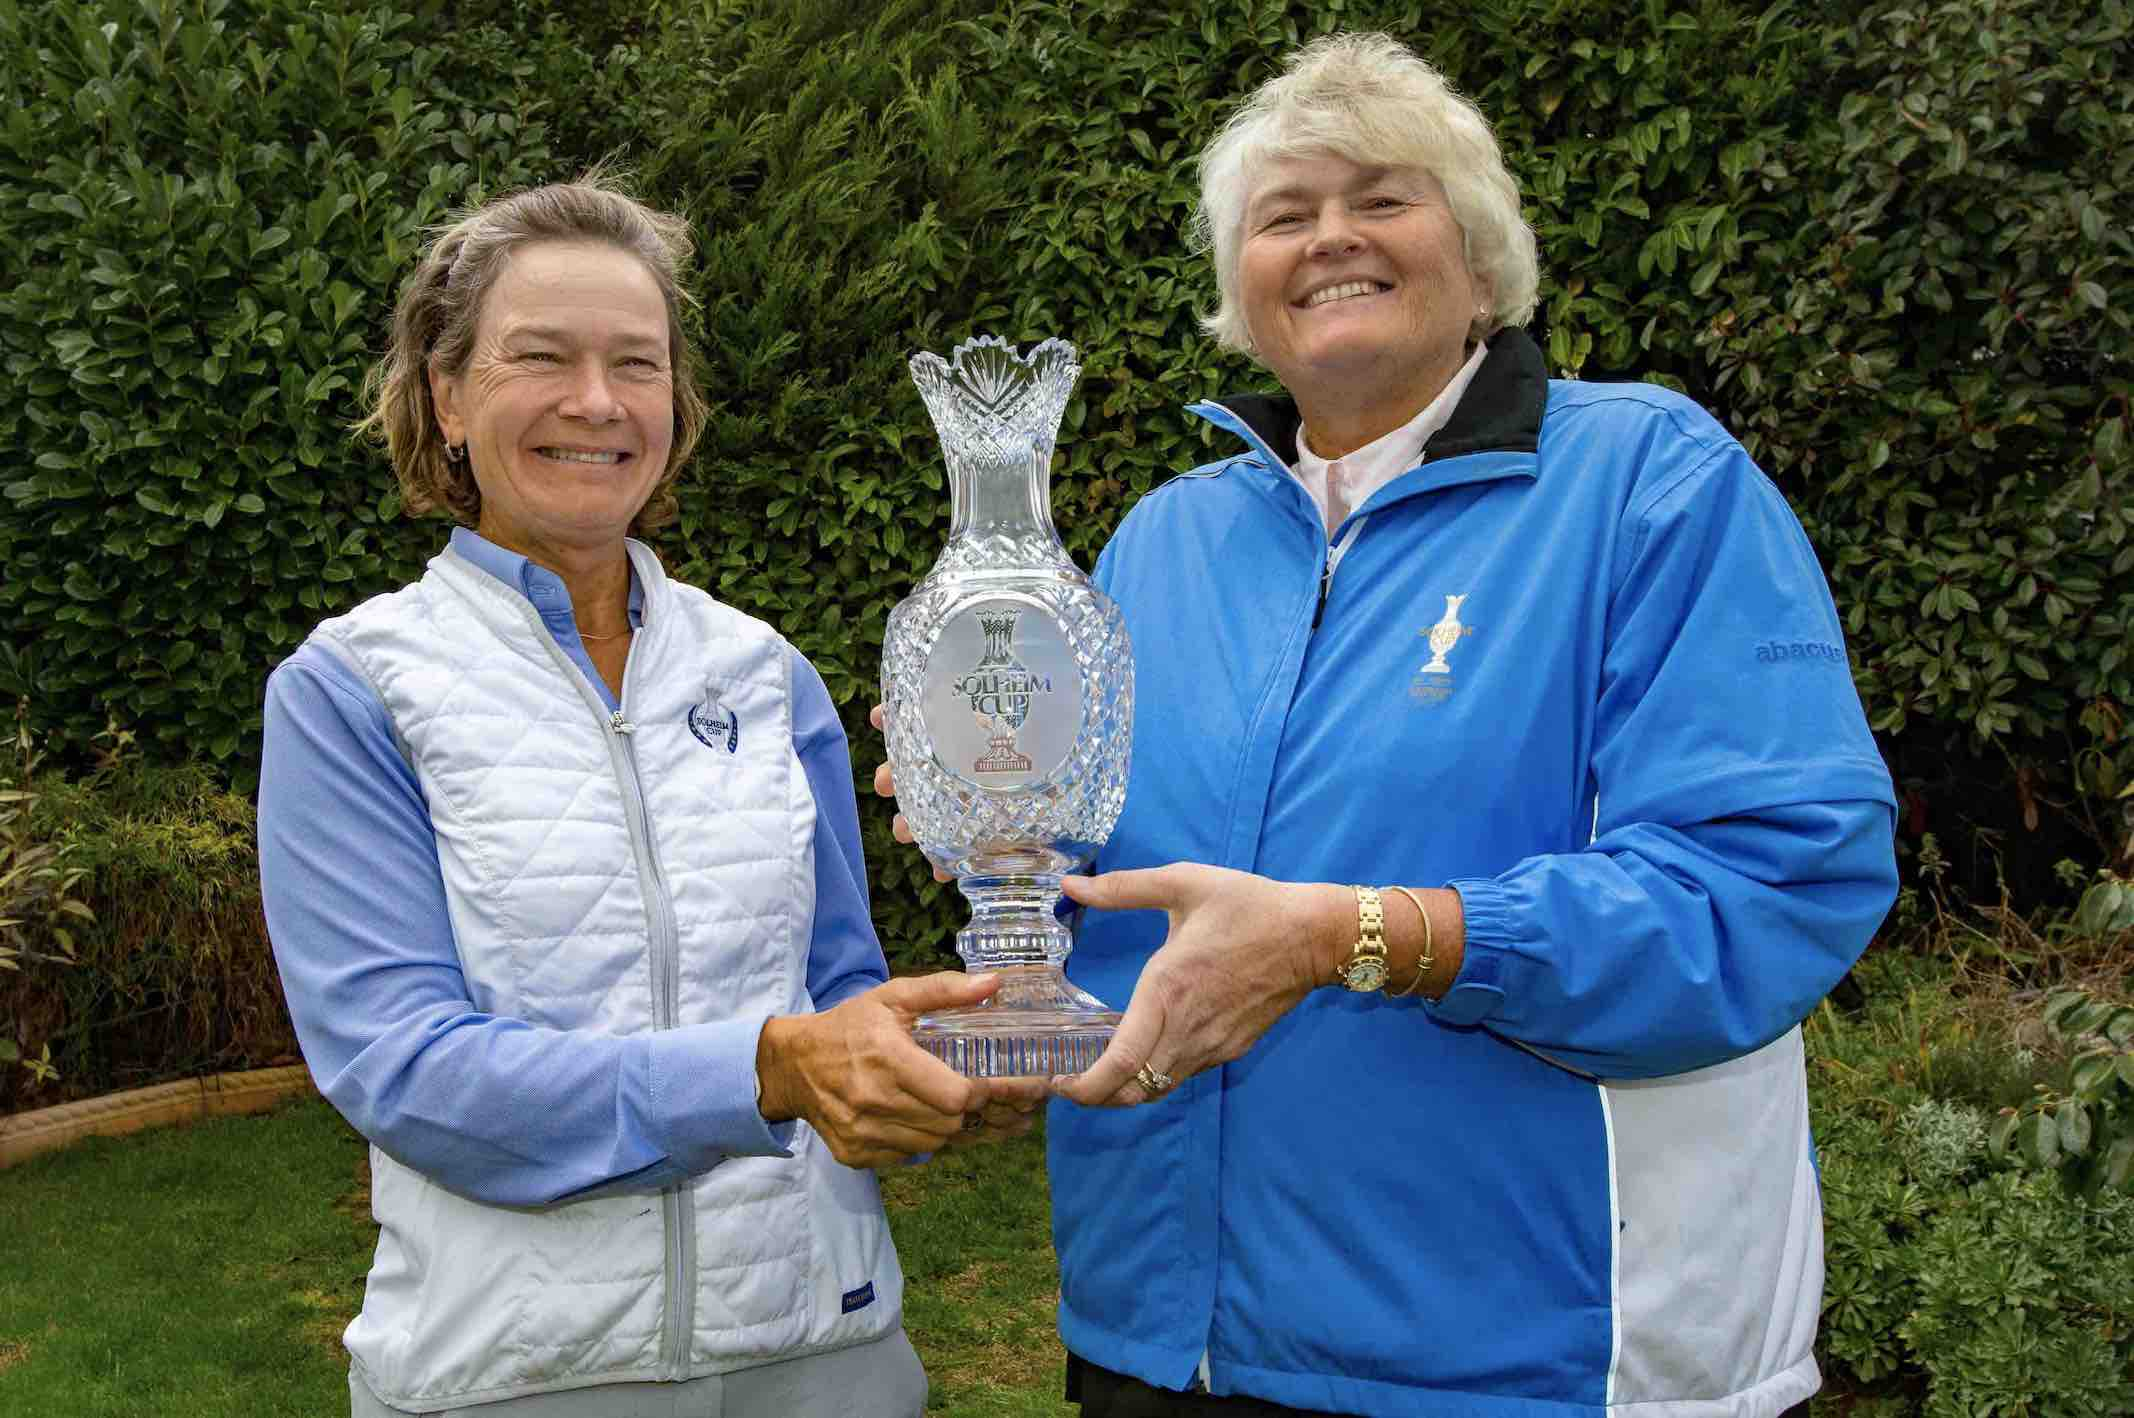 Dame Laura Davies named Solheim Cup Vice Captain